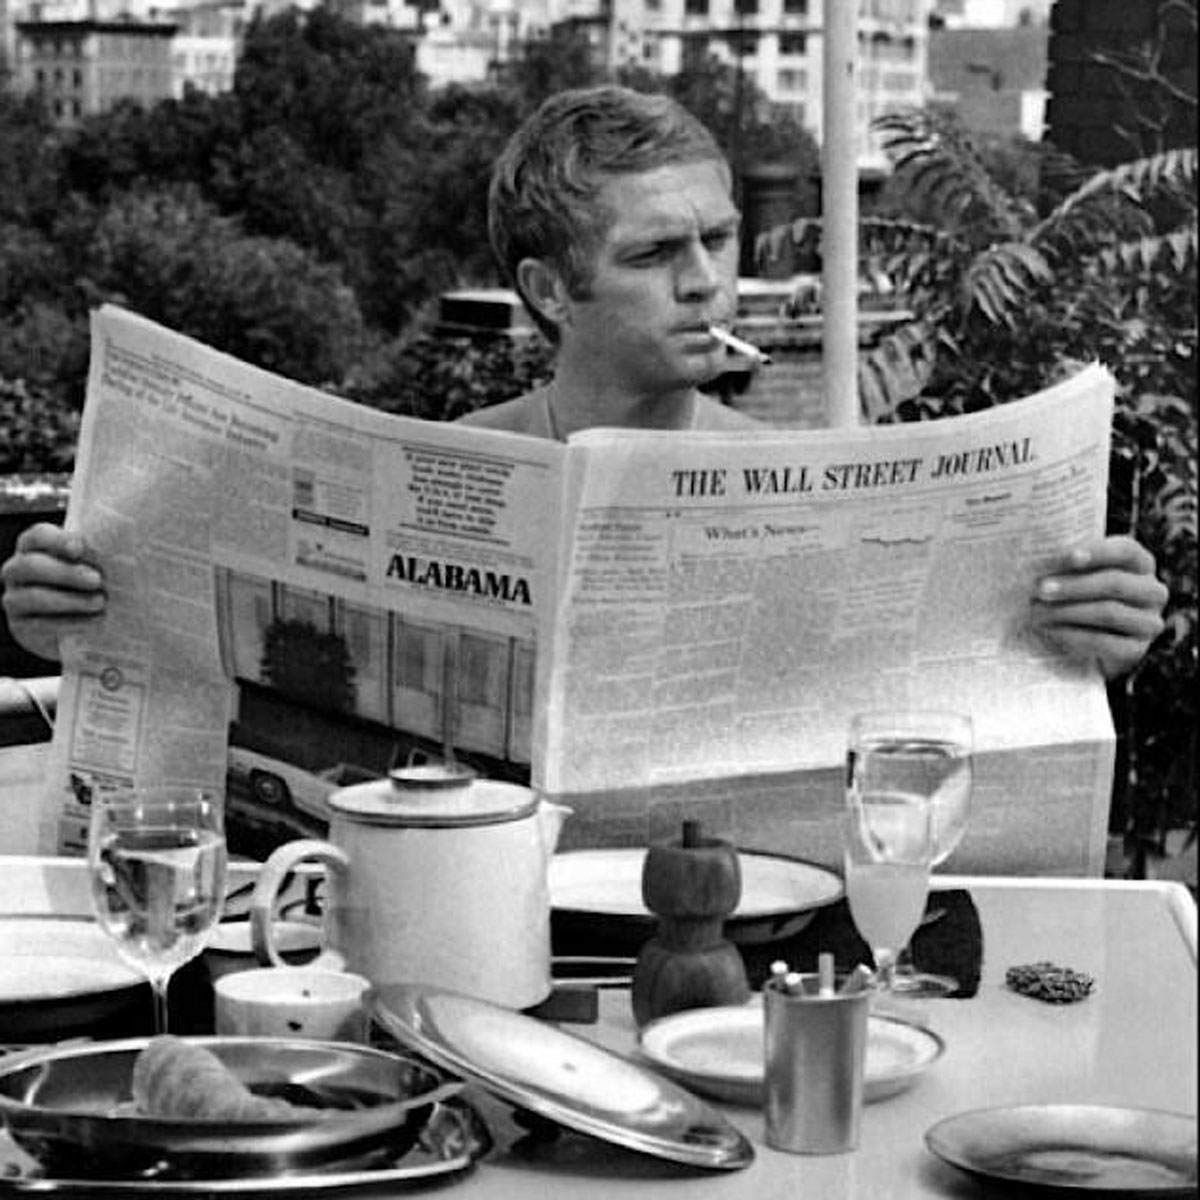 Steve McQueen in the 1968 film, The Thomas Crown Affair having breakfast alongside co-star Faye Dunaway